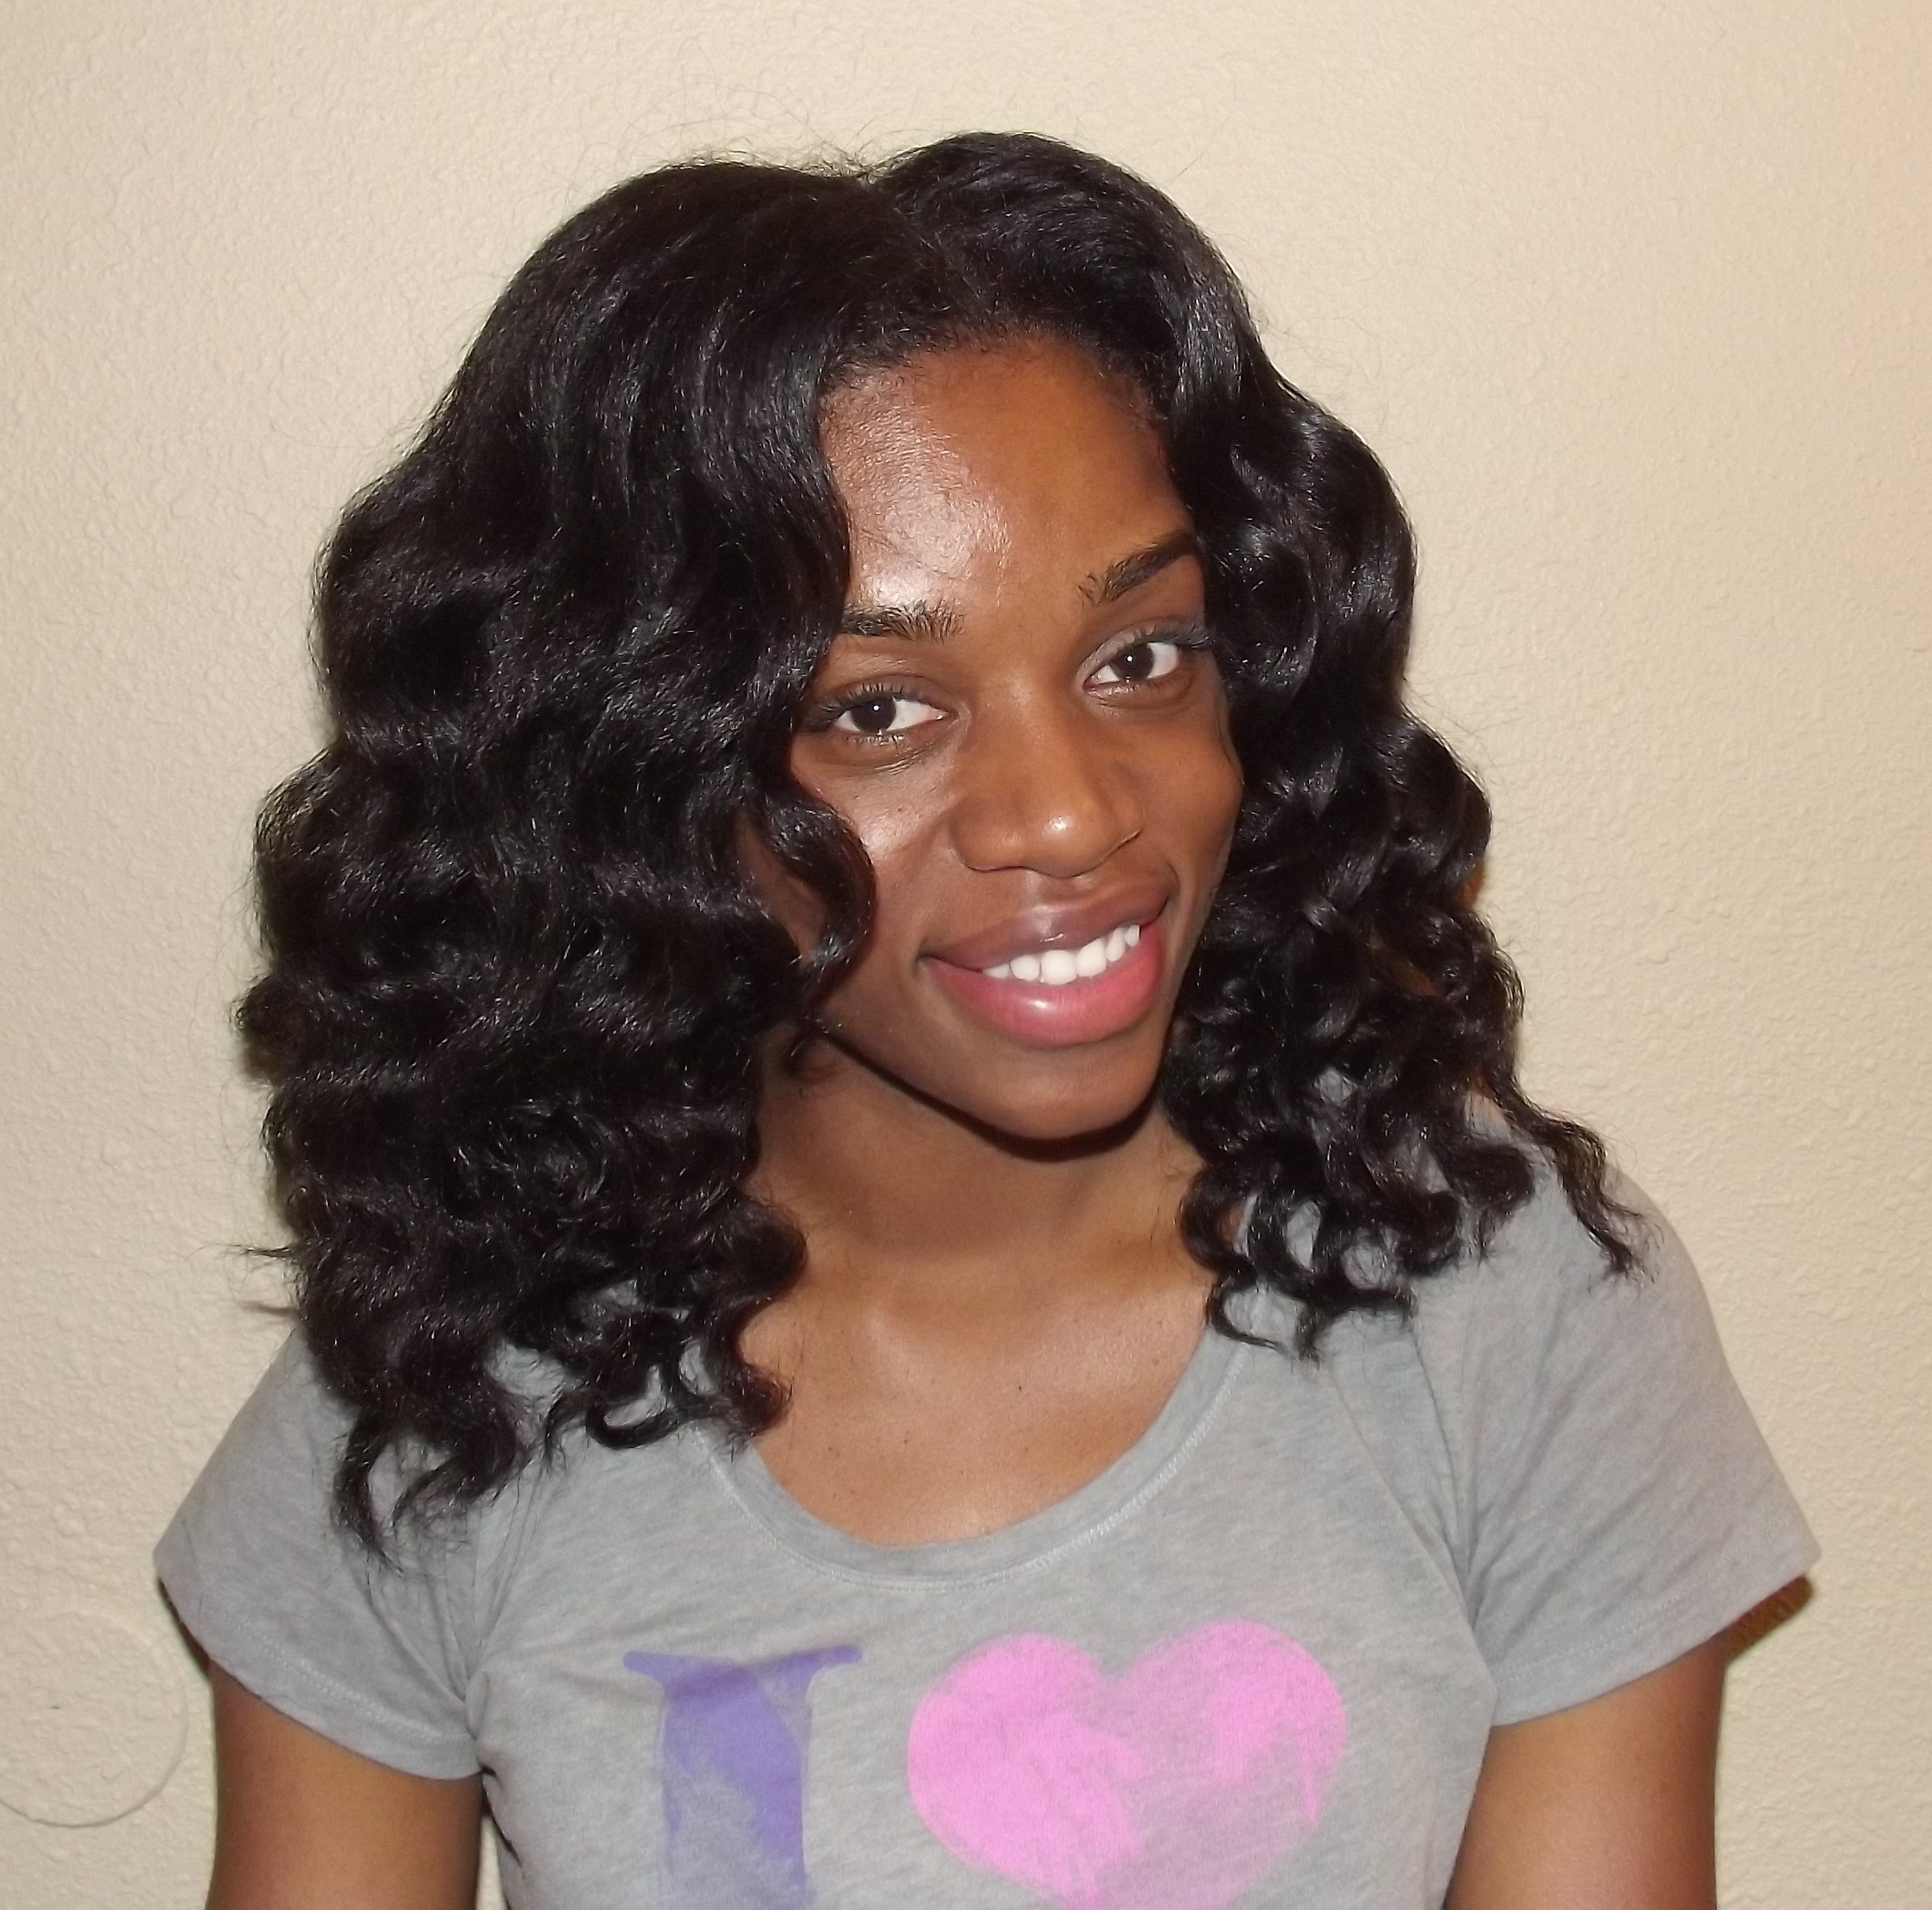 The Best Using A Curl Wand On Natural Hair Curlplease Pictures